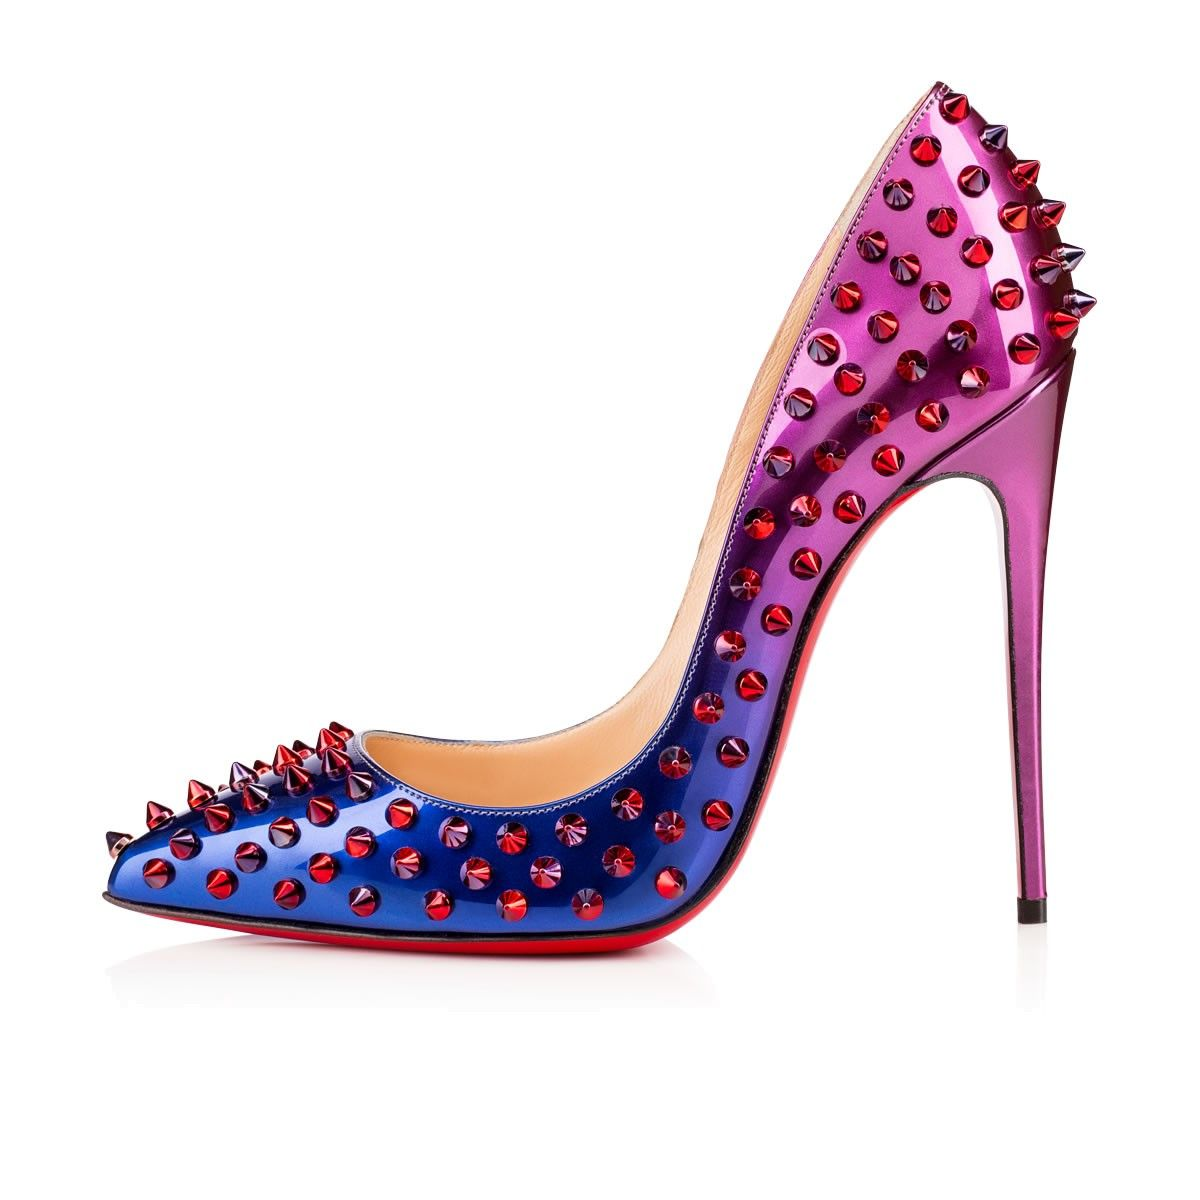 Follies Spikes 120mm Rose Digitale Patent Leather